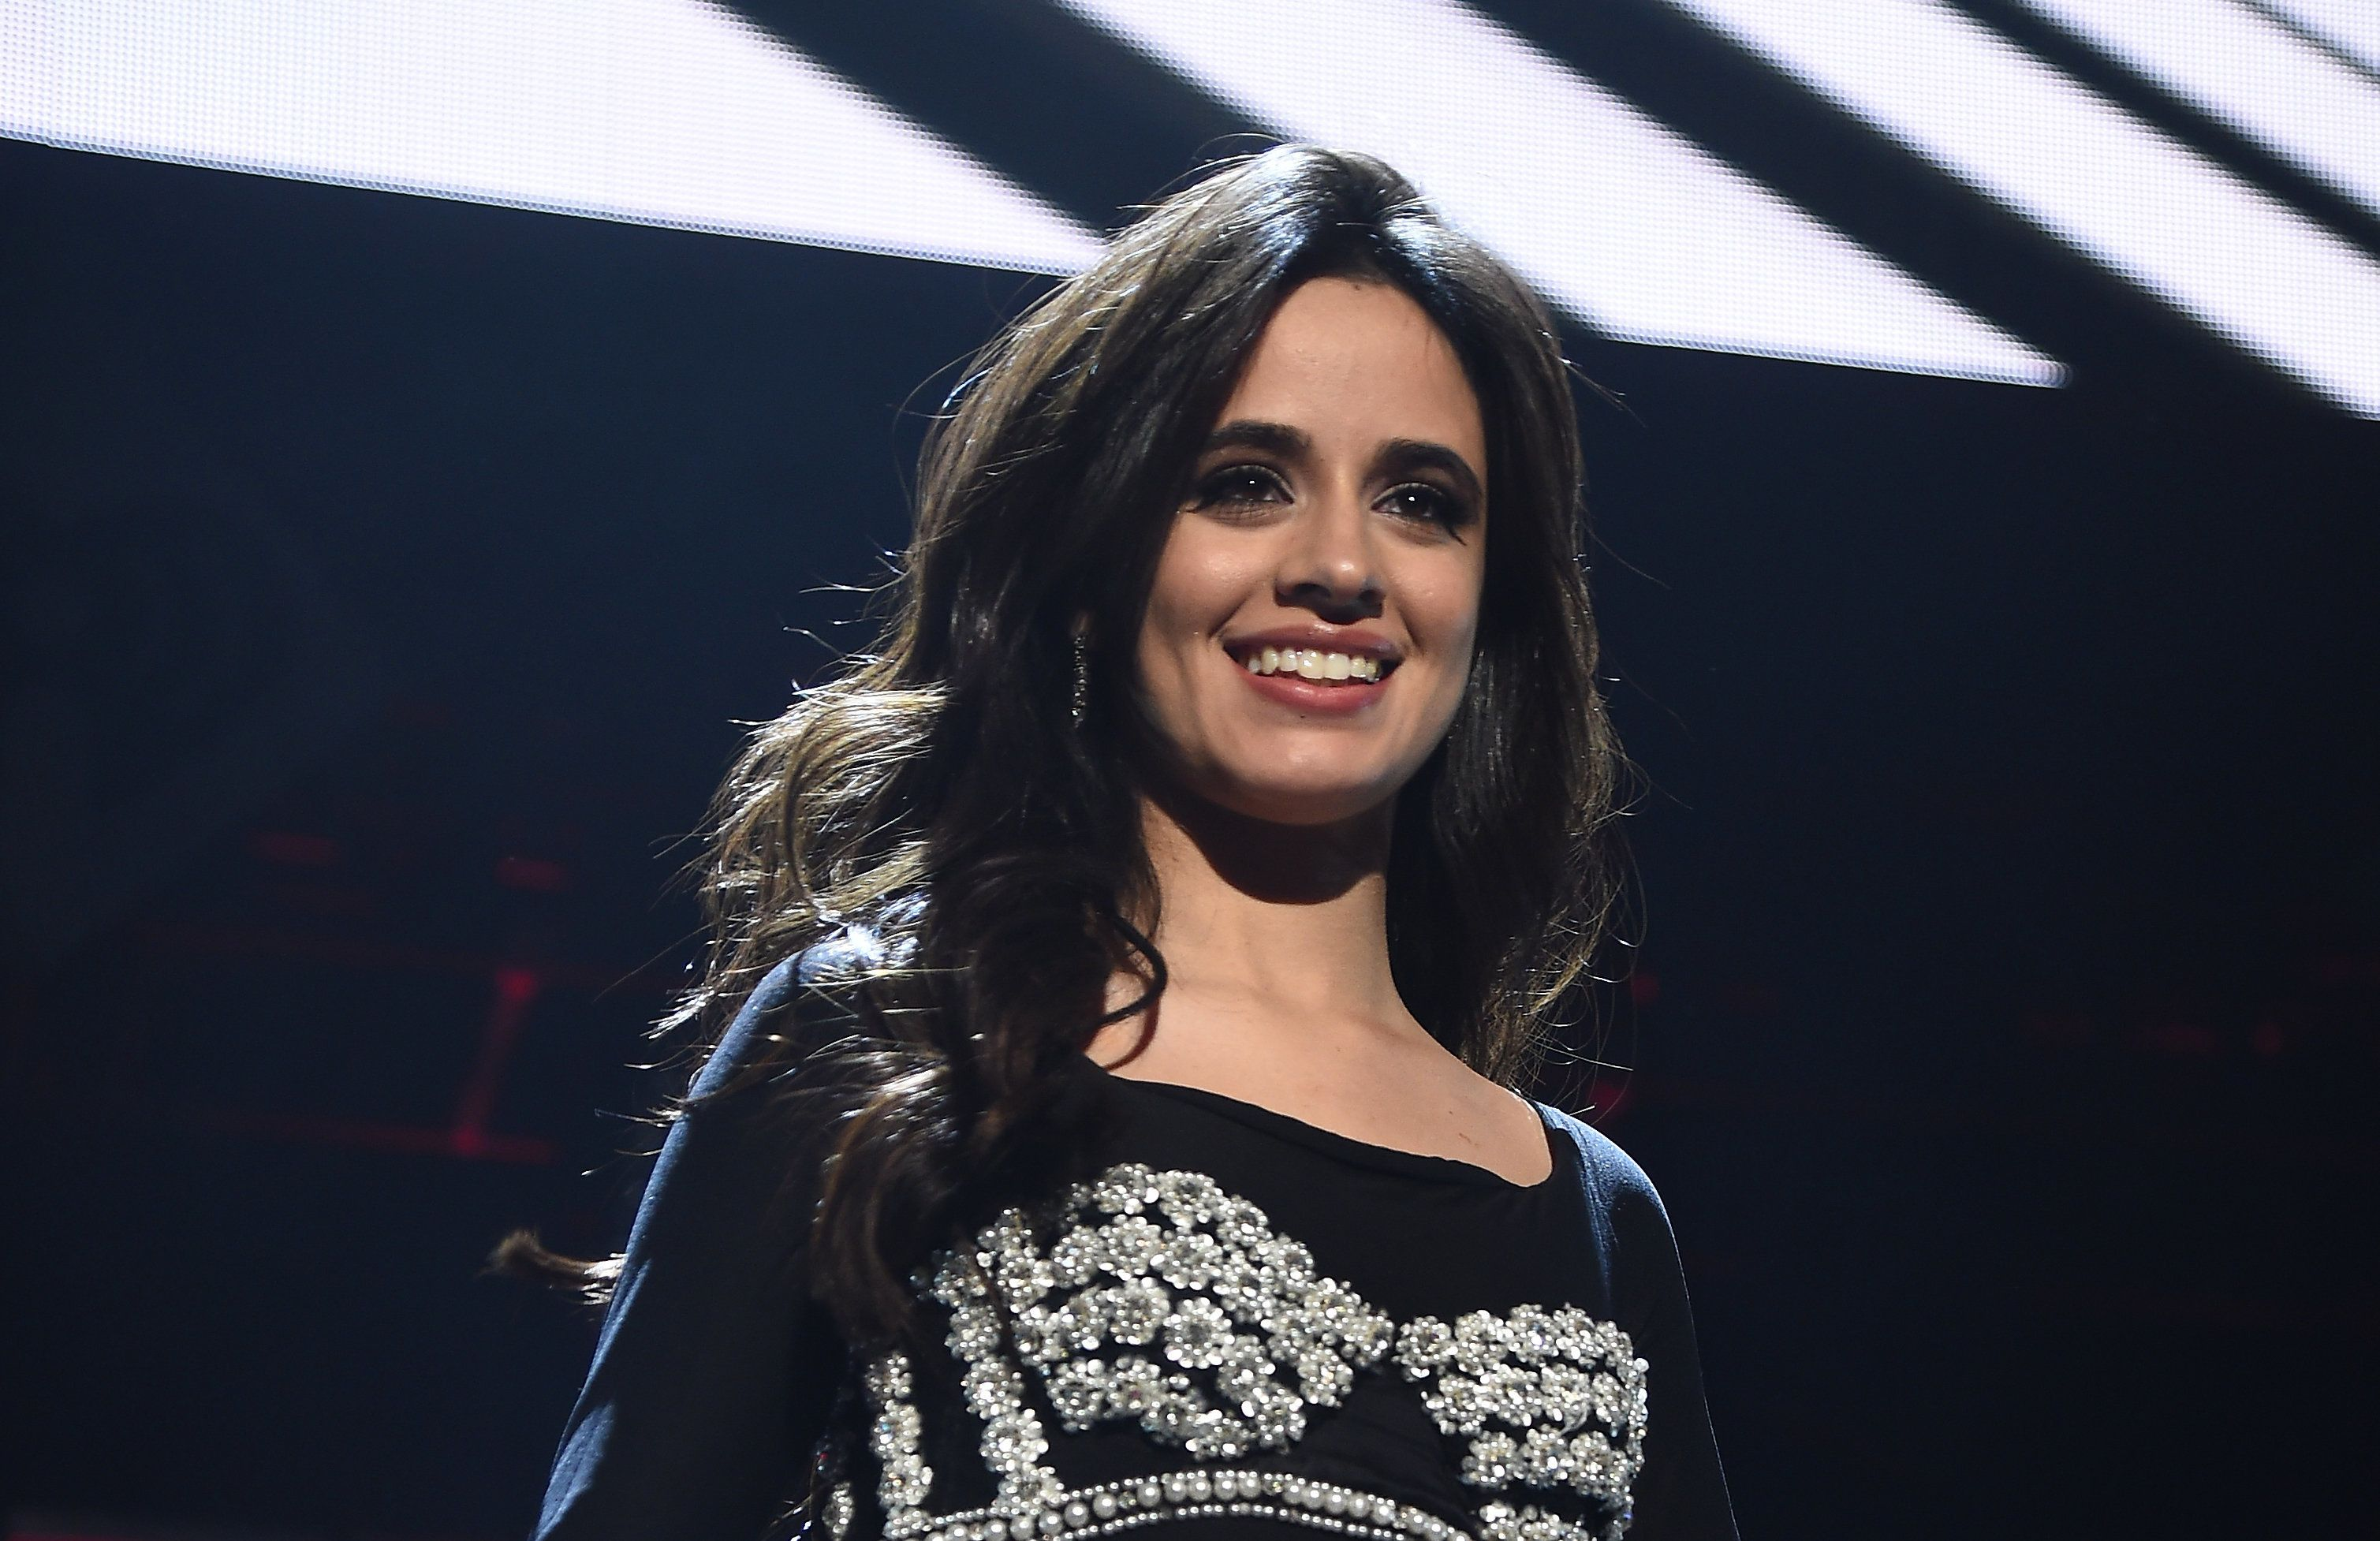 Camila Cabello Swaps Out Sneakers for These High-Heel Booties